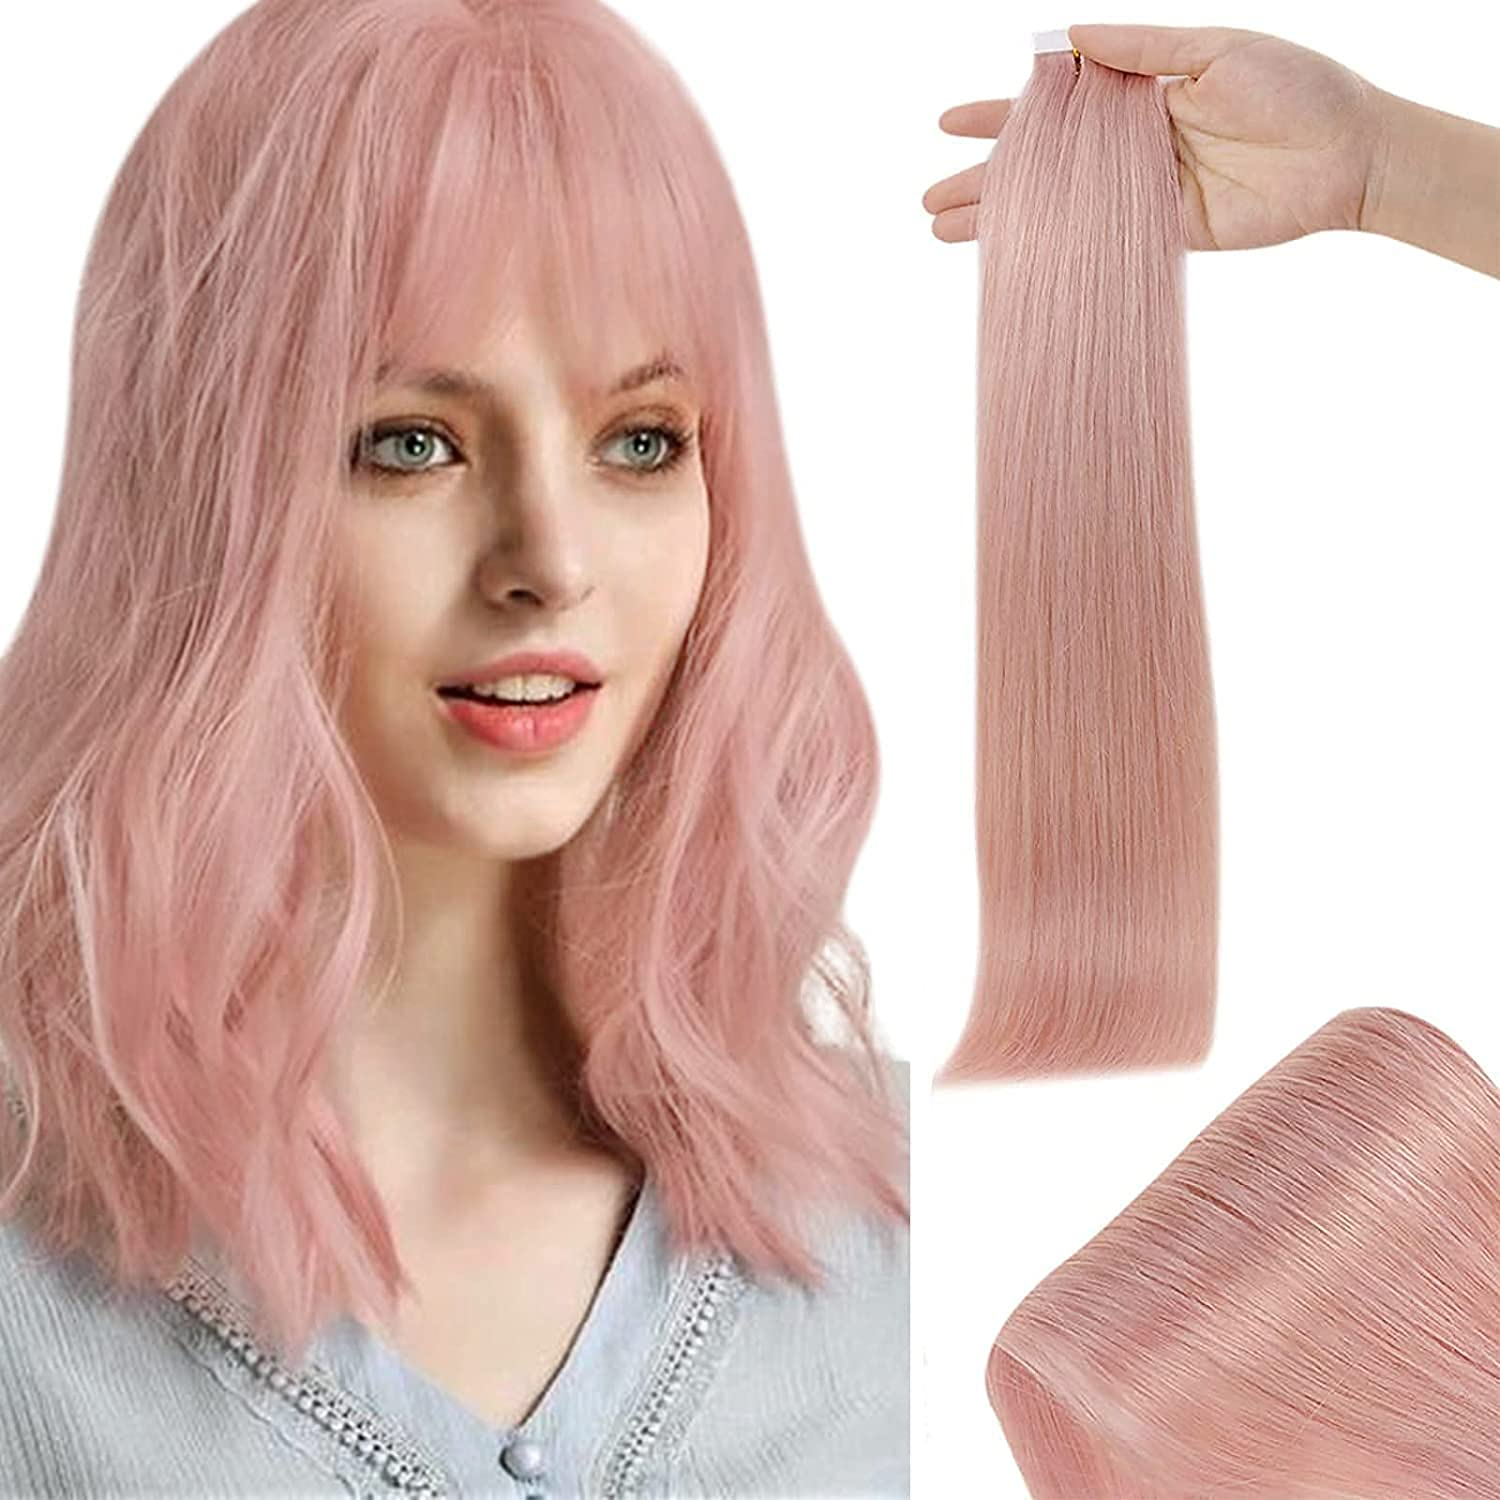 RUNATURE Light unisex Dealing full price reduction Pink Tape in Hair Extensions 18 Skin Weft Ha Inch